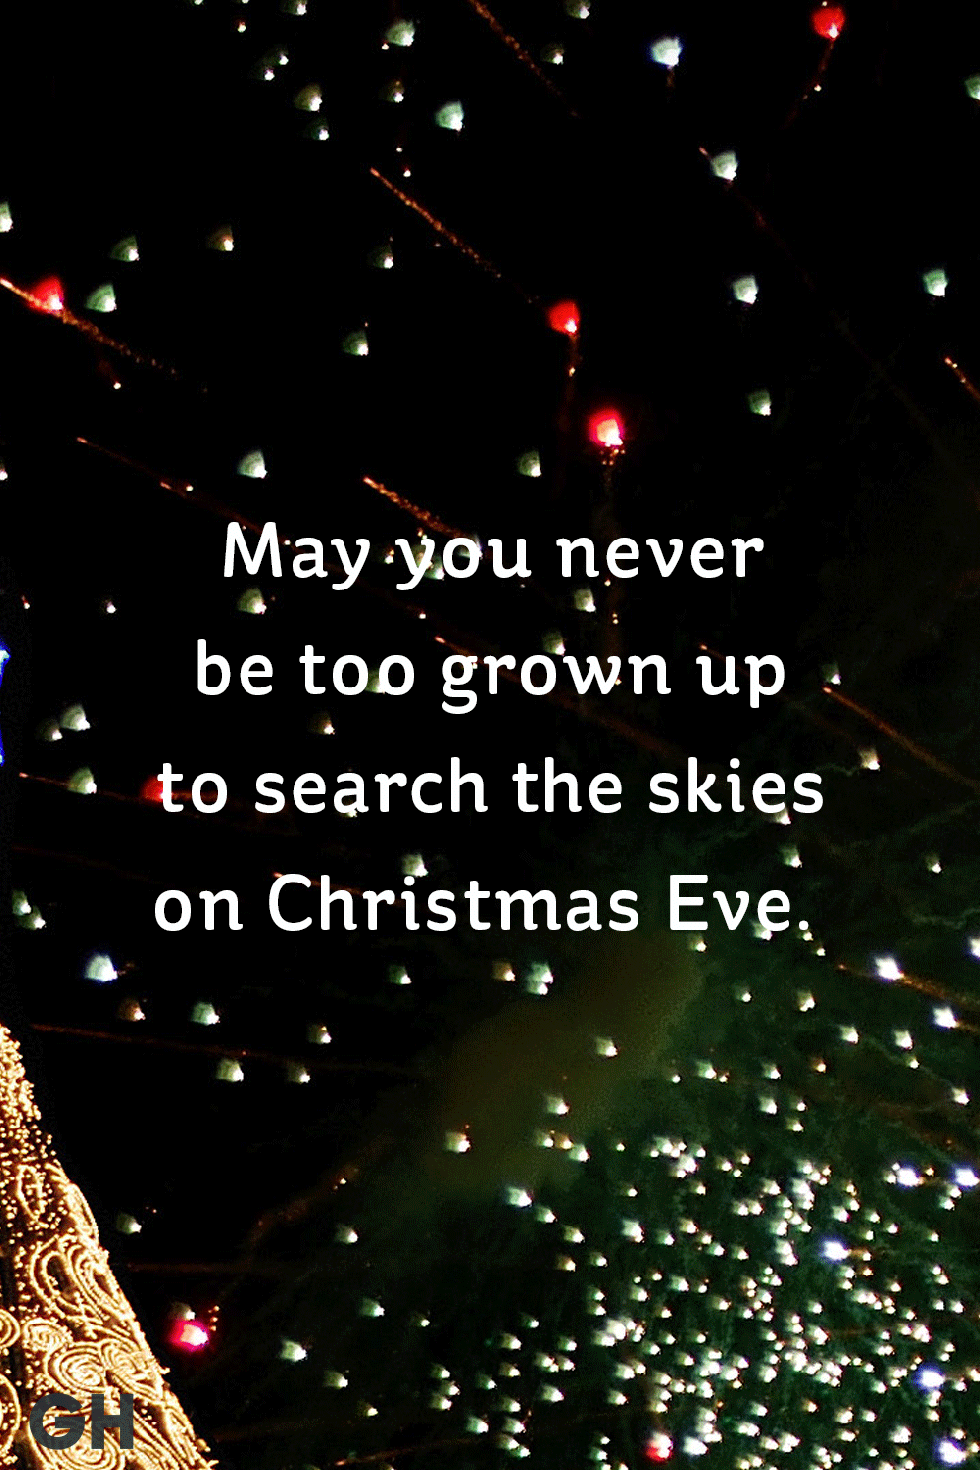 These Festive Christmas Quotes Will Get You In The Holiday Spirit Asap Christmas Eve Quotes Holiday Quotes Christmas Christmas Quotes